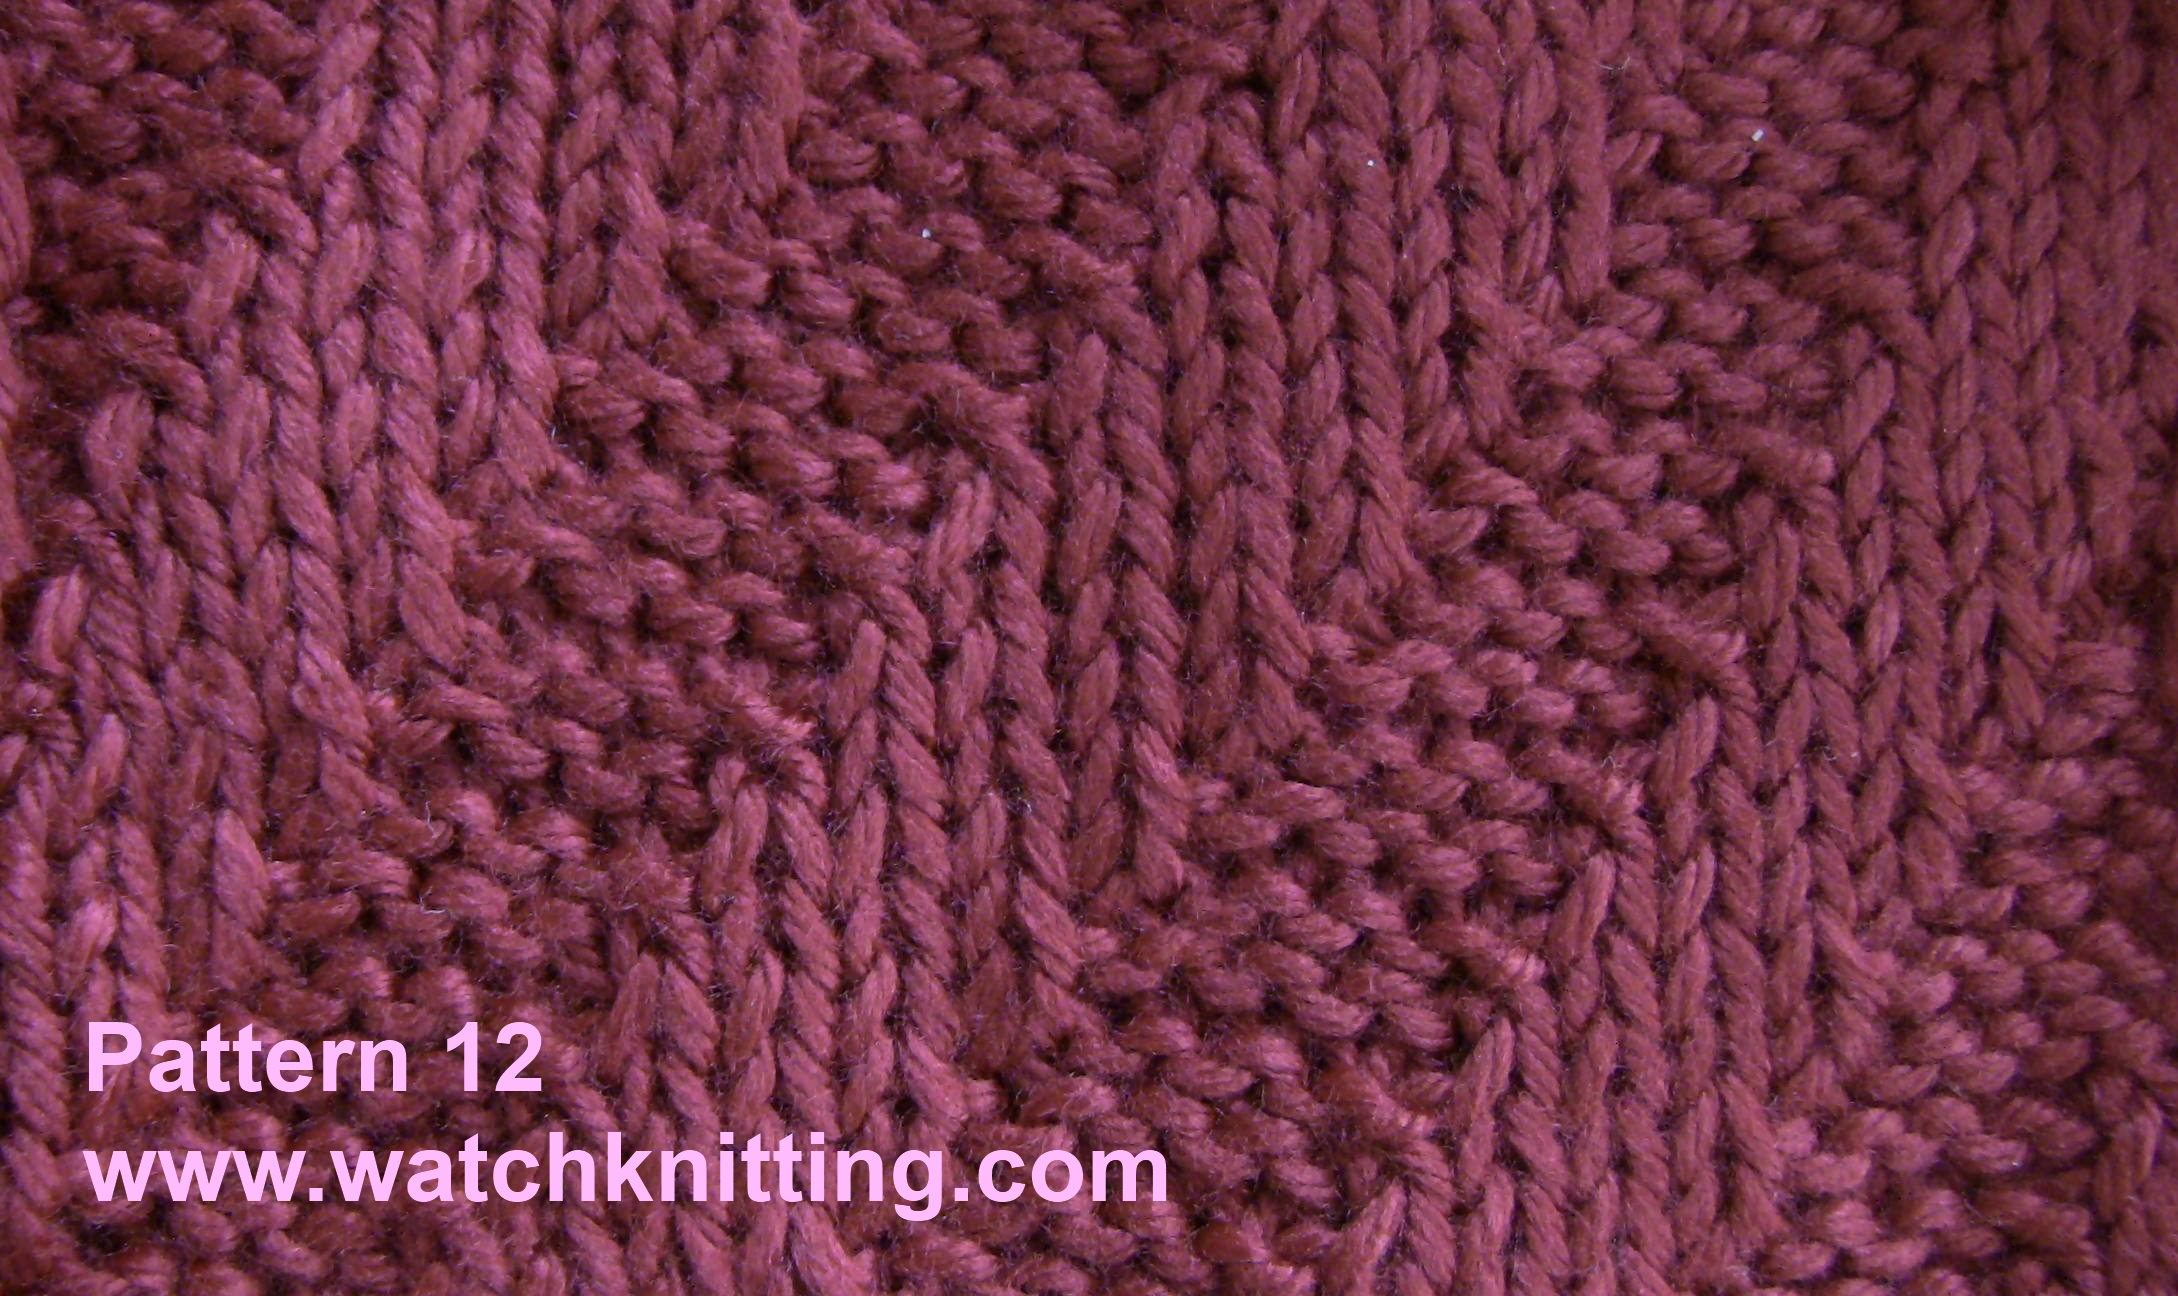 Patterns For Knitting : Pattern 12-Simple Knitting Patterns-www.watchknitting.com